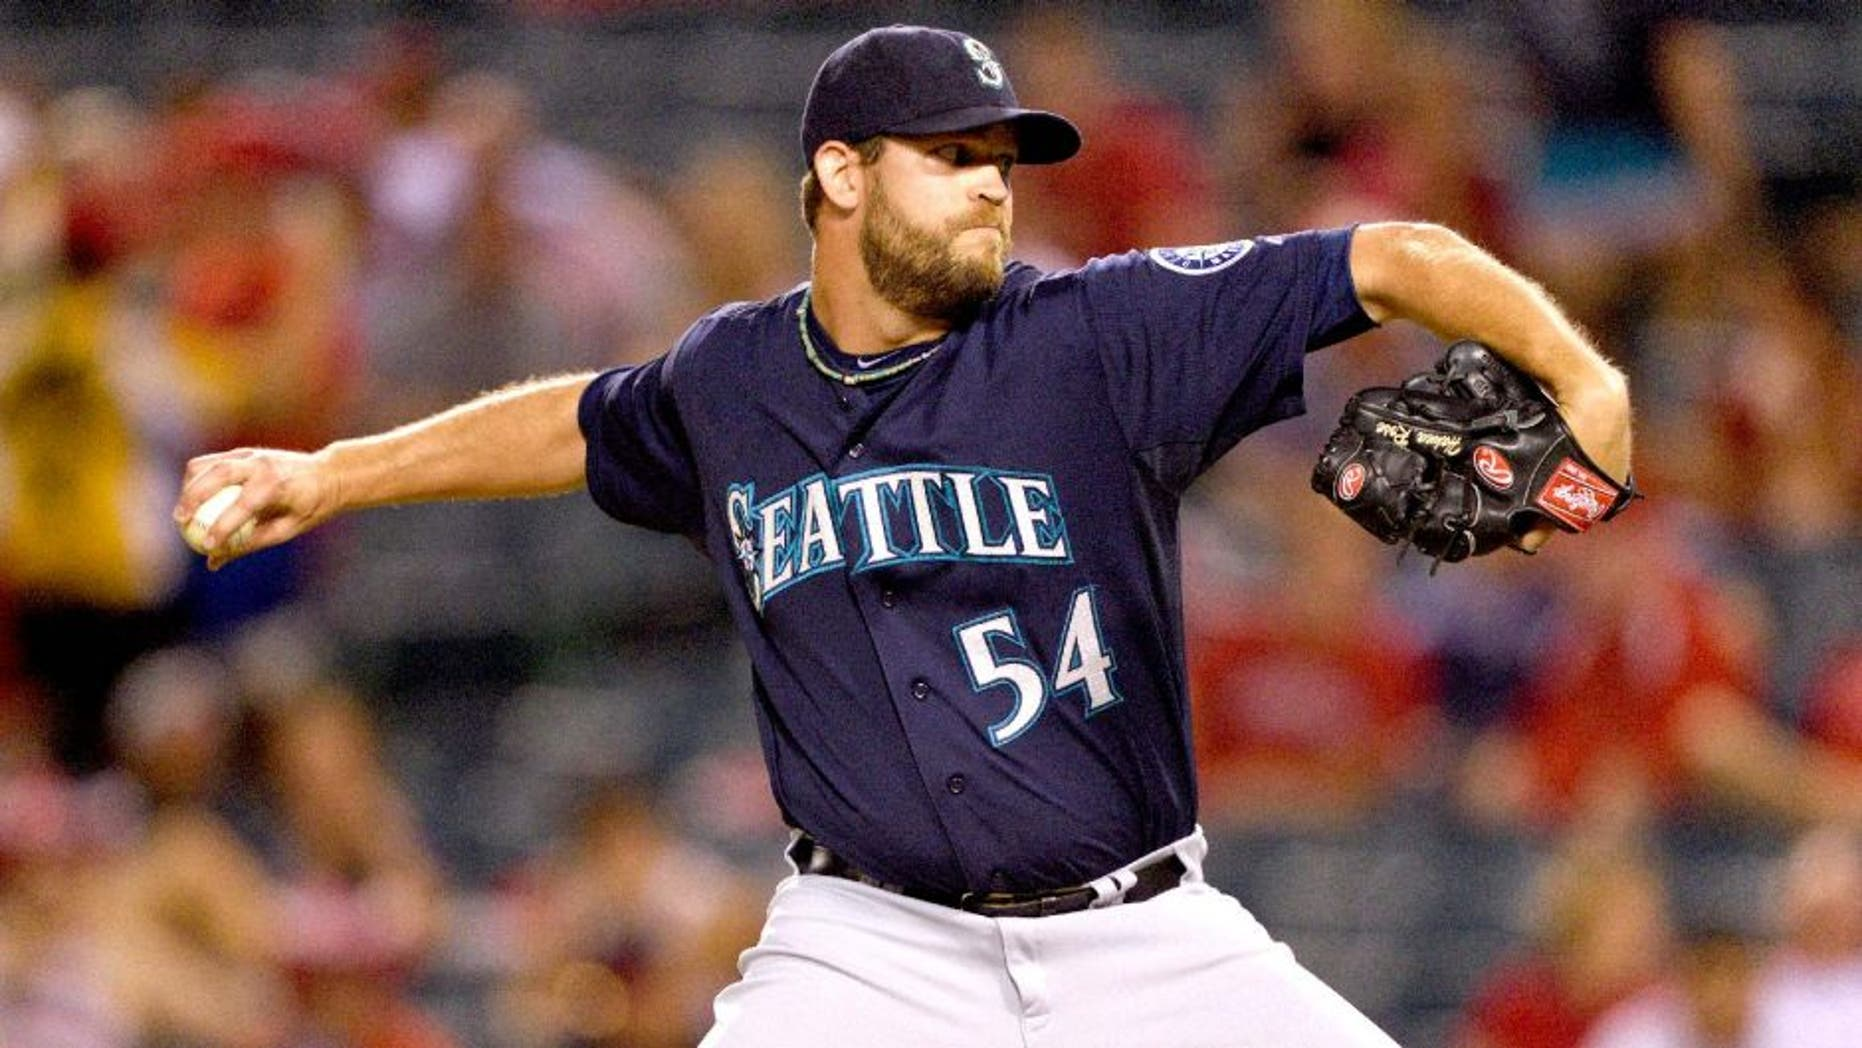 ANAHEIM, CA - SEPTEMBER 16: Tom Wilhelmsen #54 of the Seattle Mariners pitches during the game against the Los Angeles Angels of Anaheim on September 16, 2014 at Angel Stadium of Anaheim in Anaheim, California. (Photo by Matt Brown/Angels Baseball LP/Getty Images)